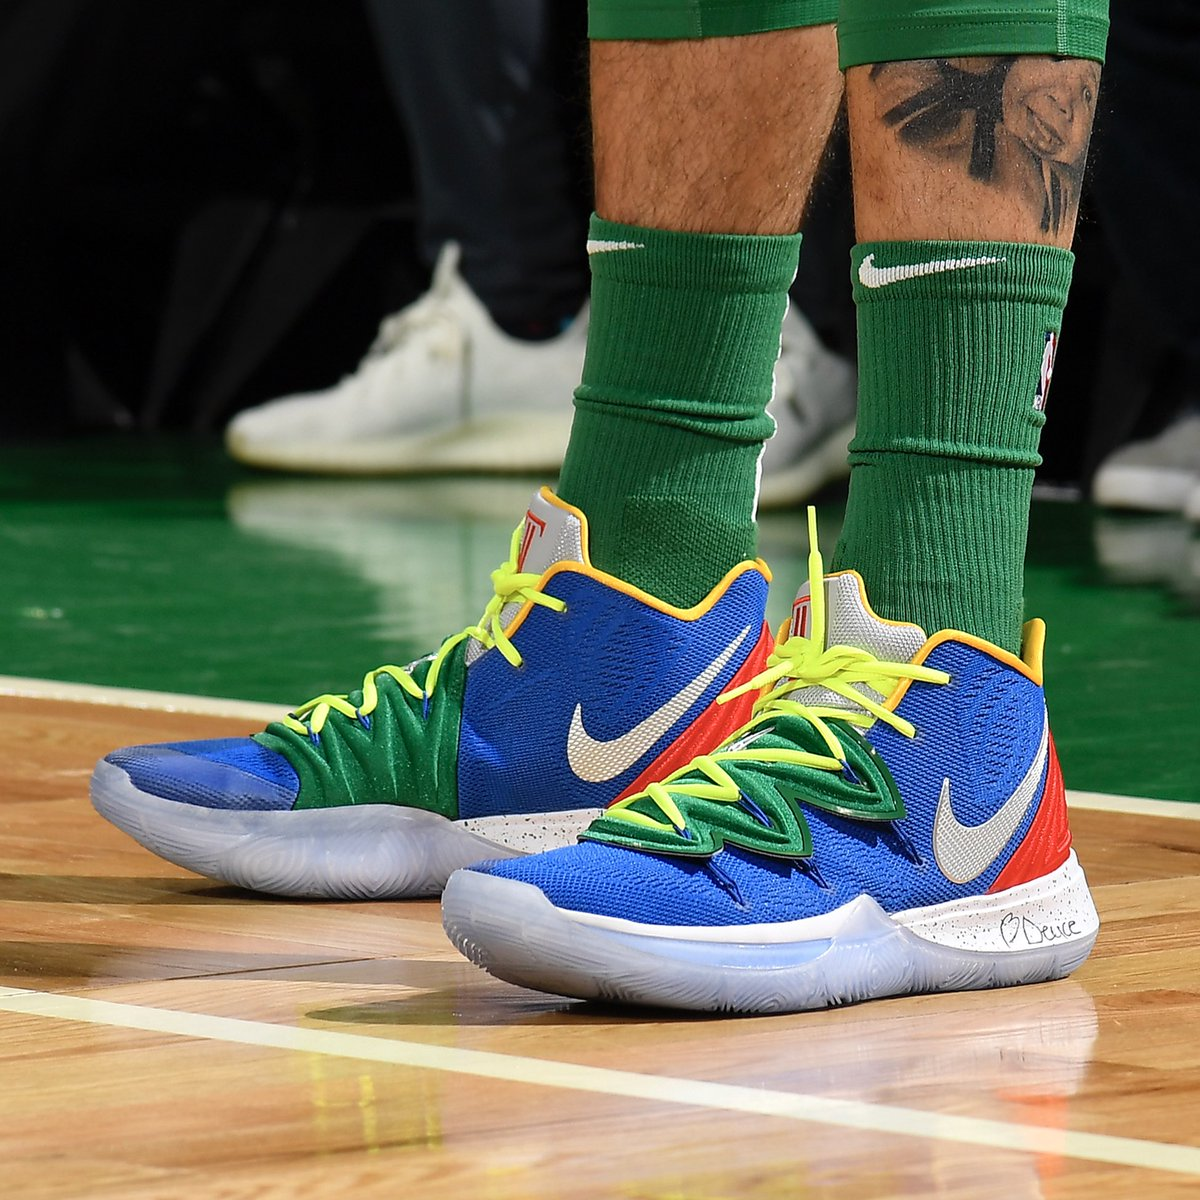 8c65b20d3b27 duke boyz and celtics teammates kyrieirving and jaytatum0 rocking nike  kyrie 5 today babsphoto